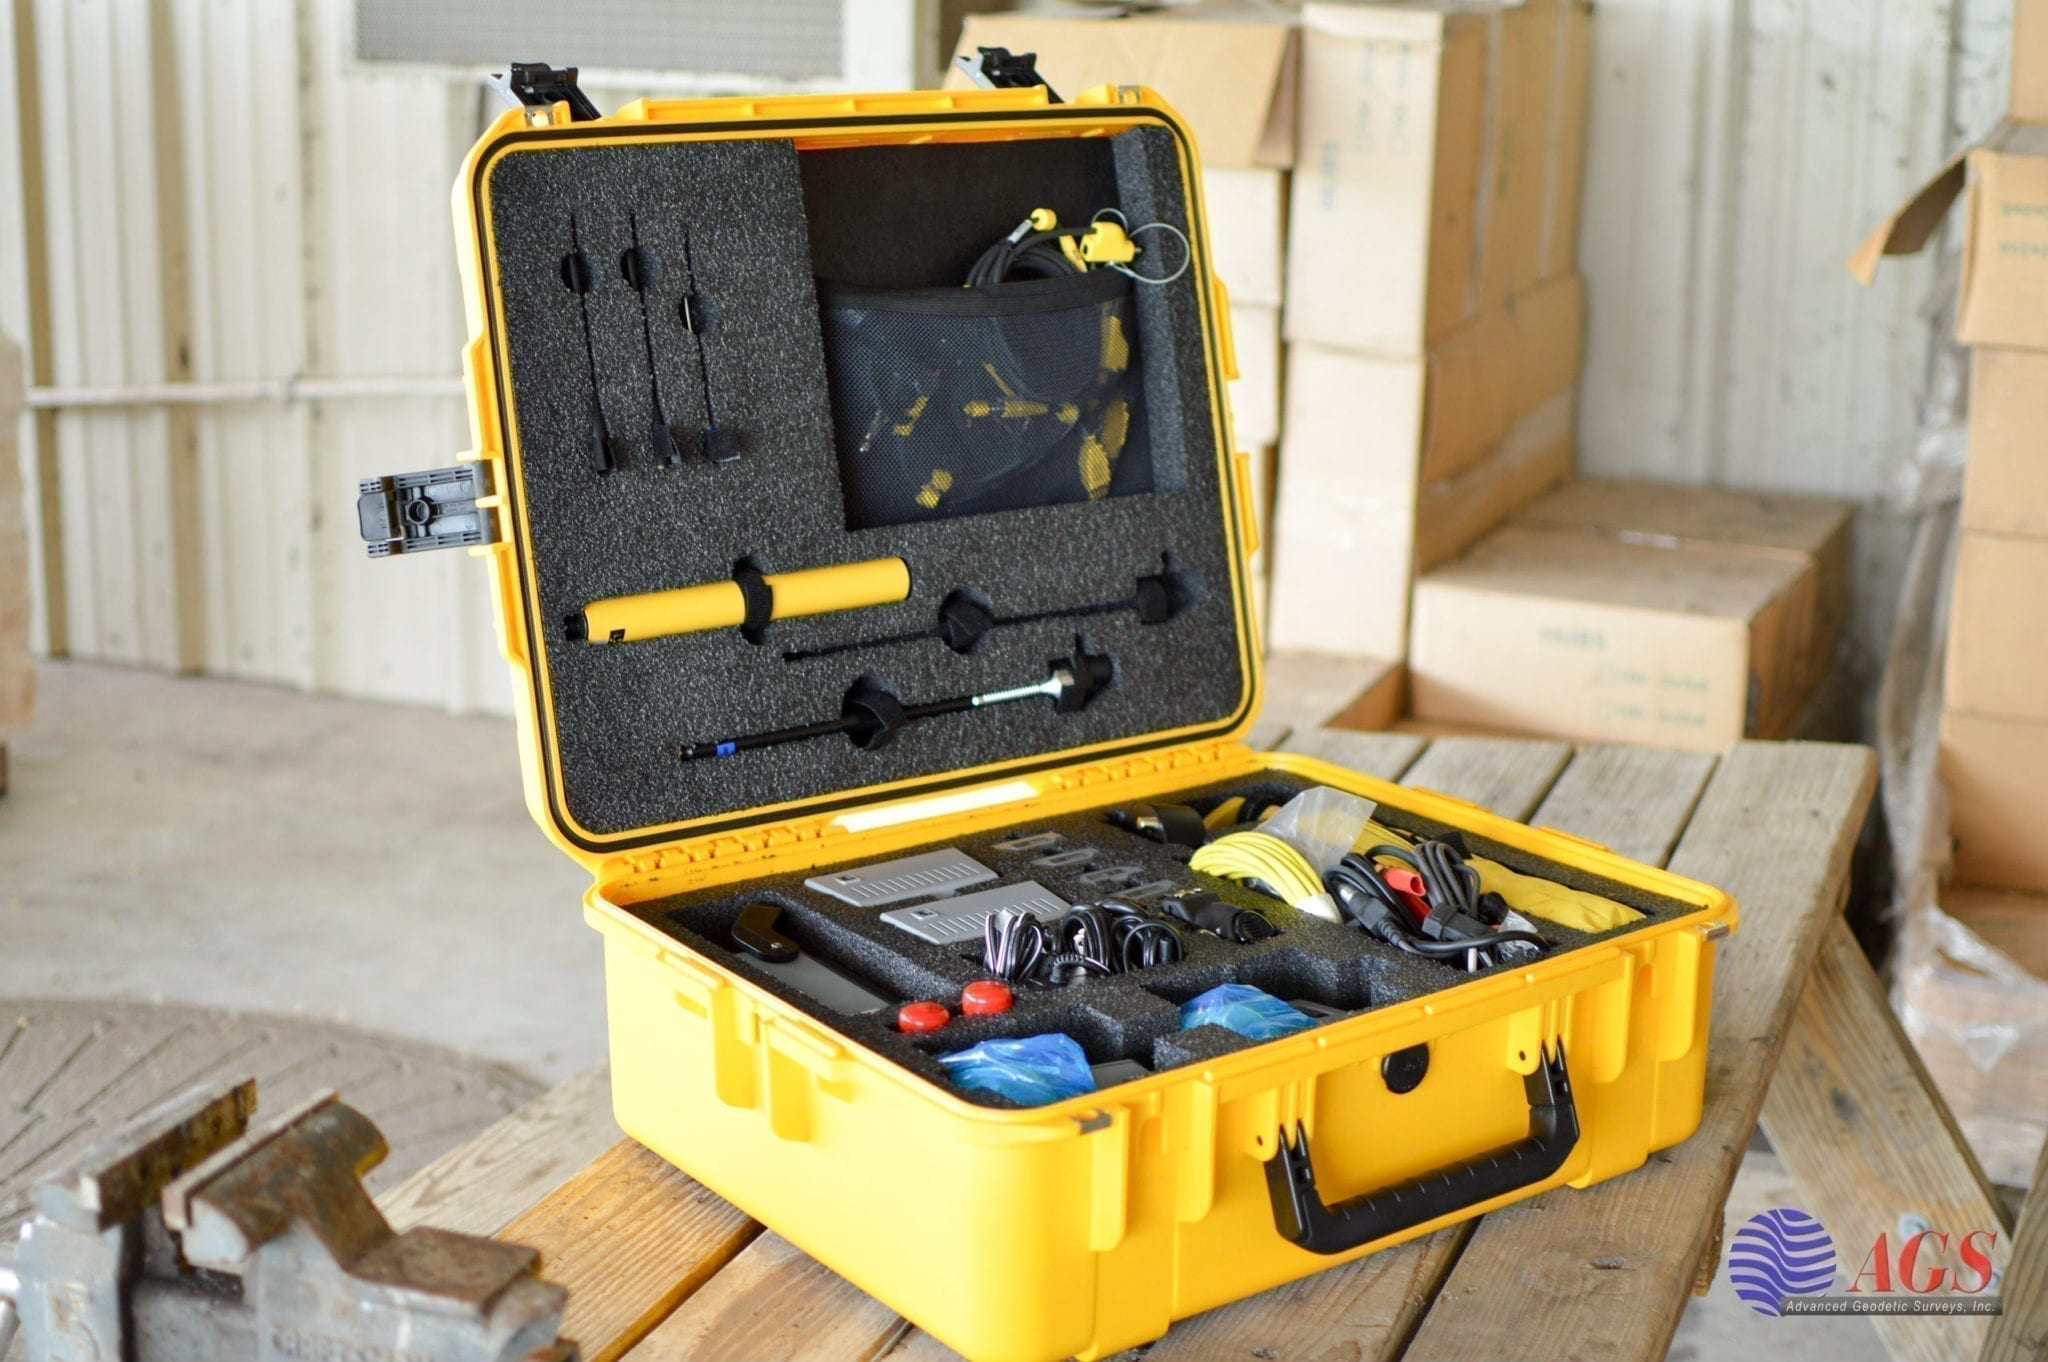 Trimble R10 GNSS - Used | AGS